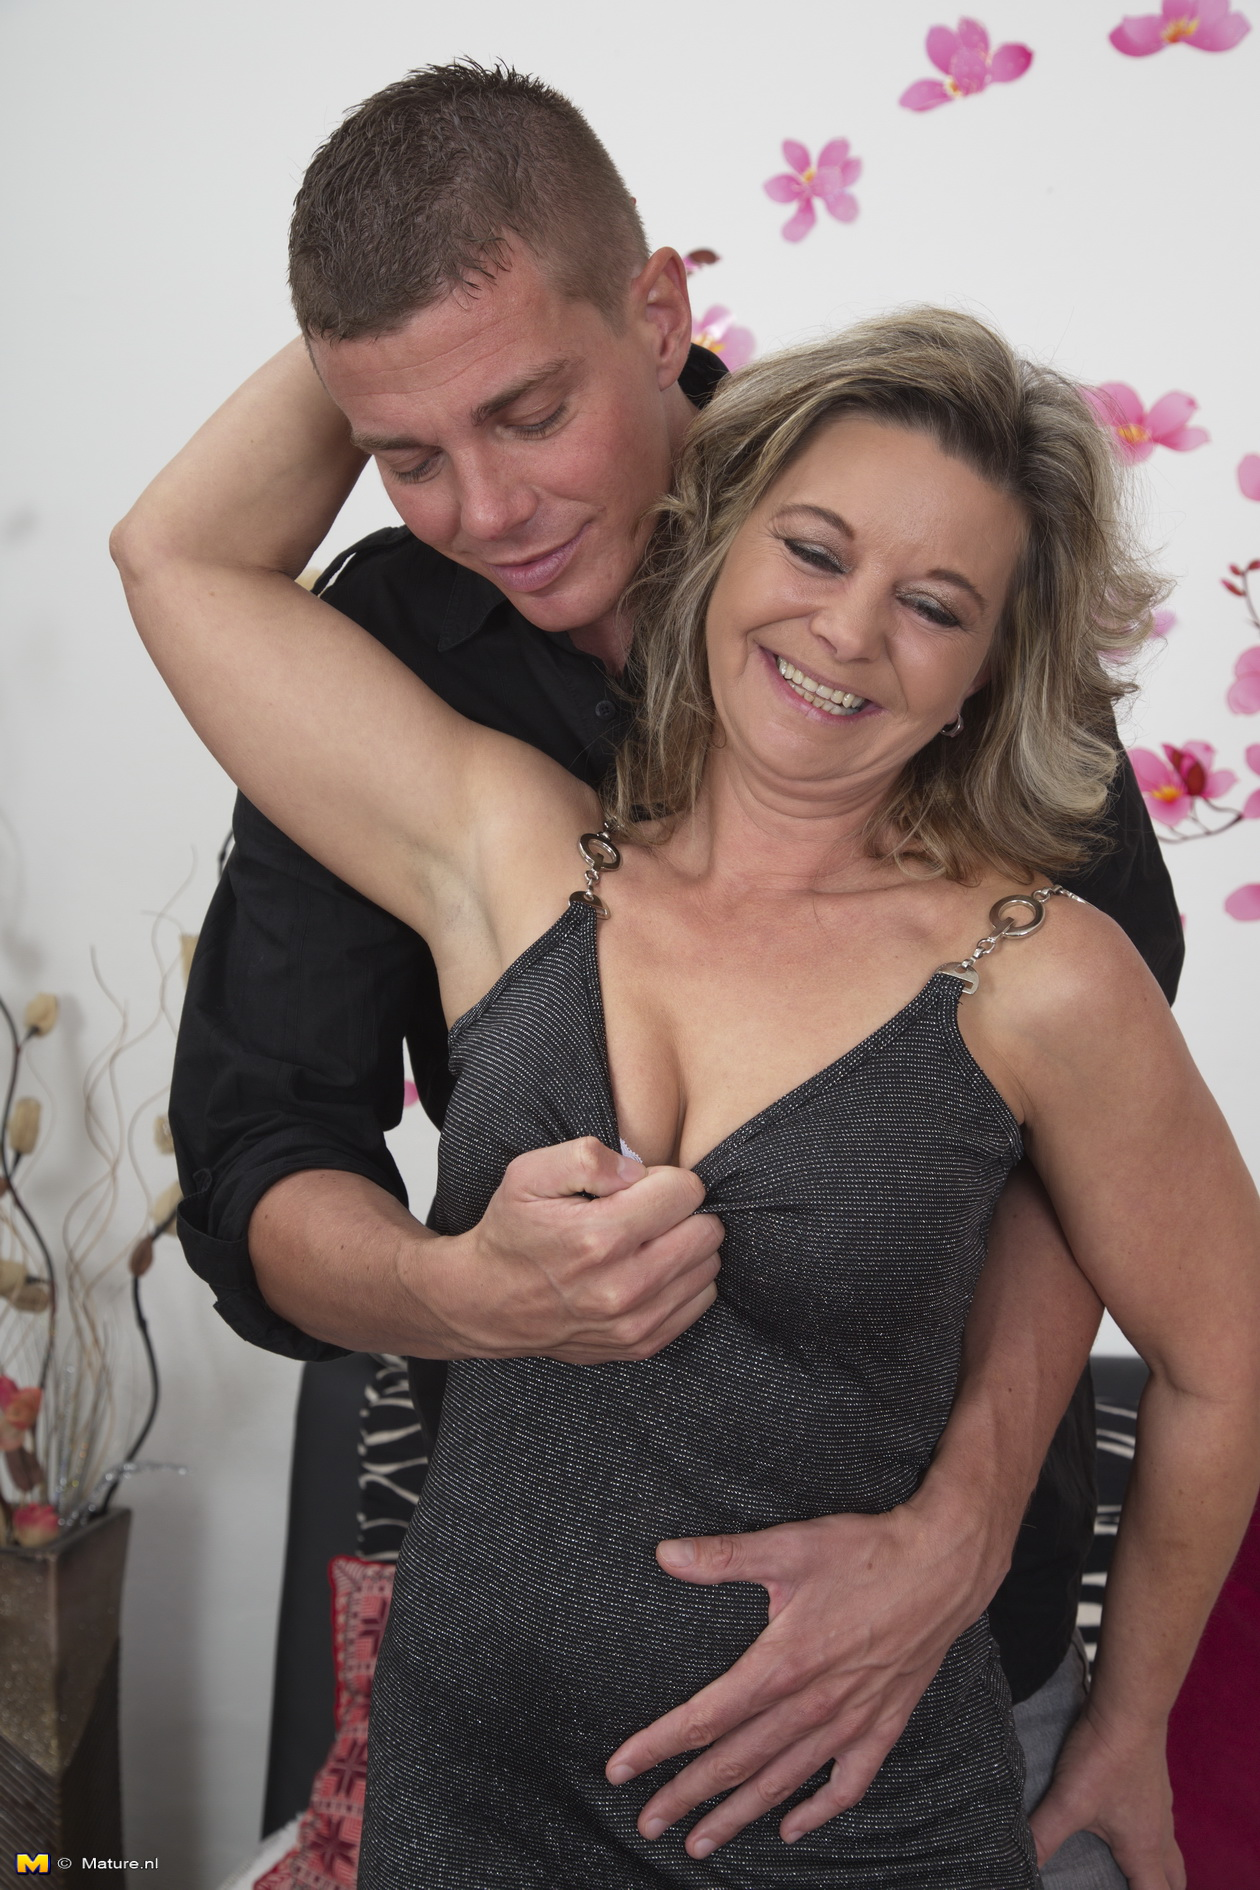 Mature lady doing what he know better 9